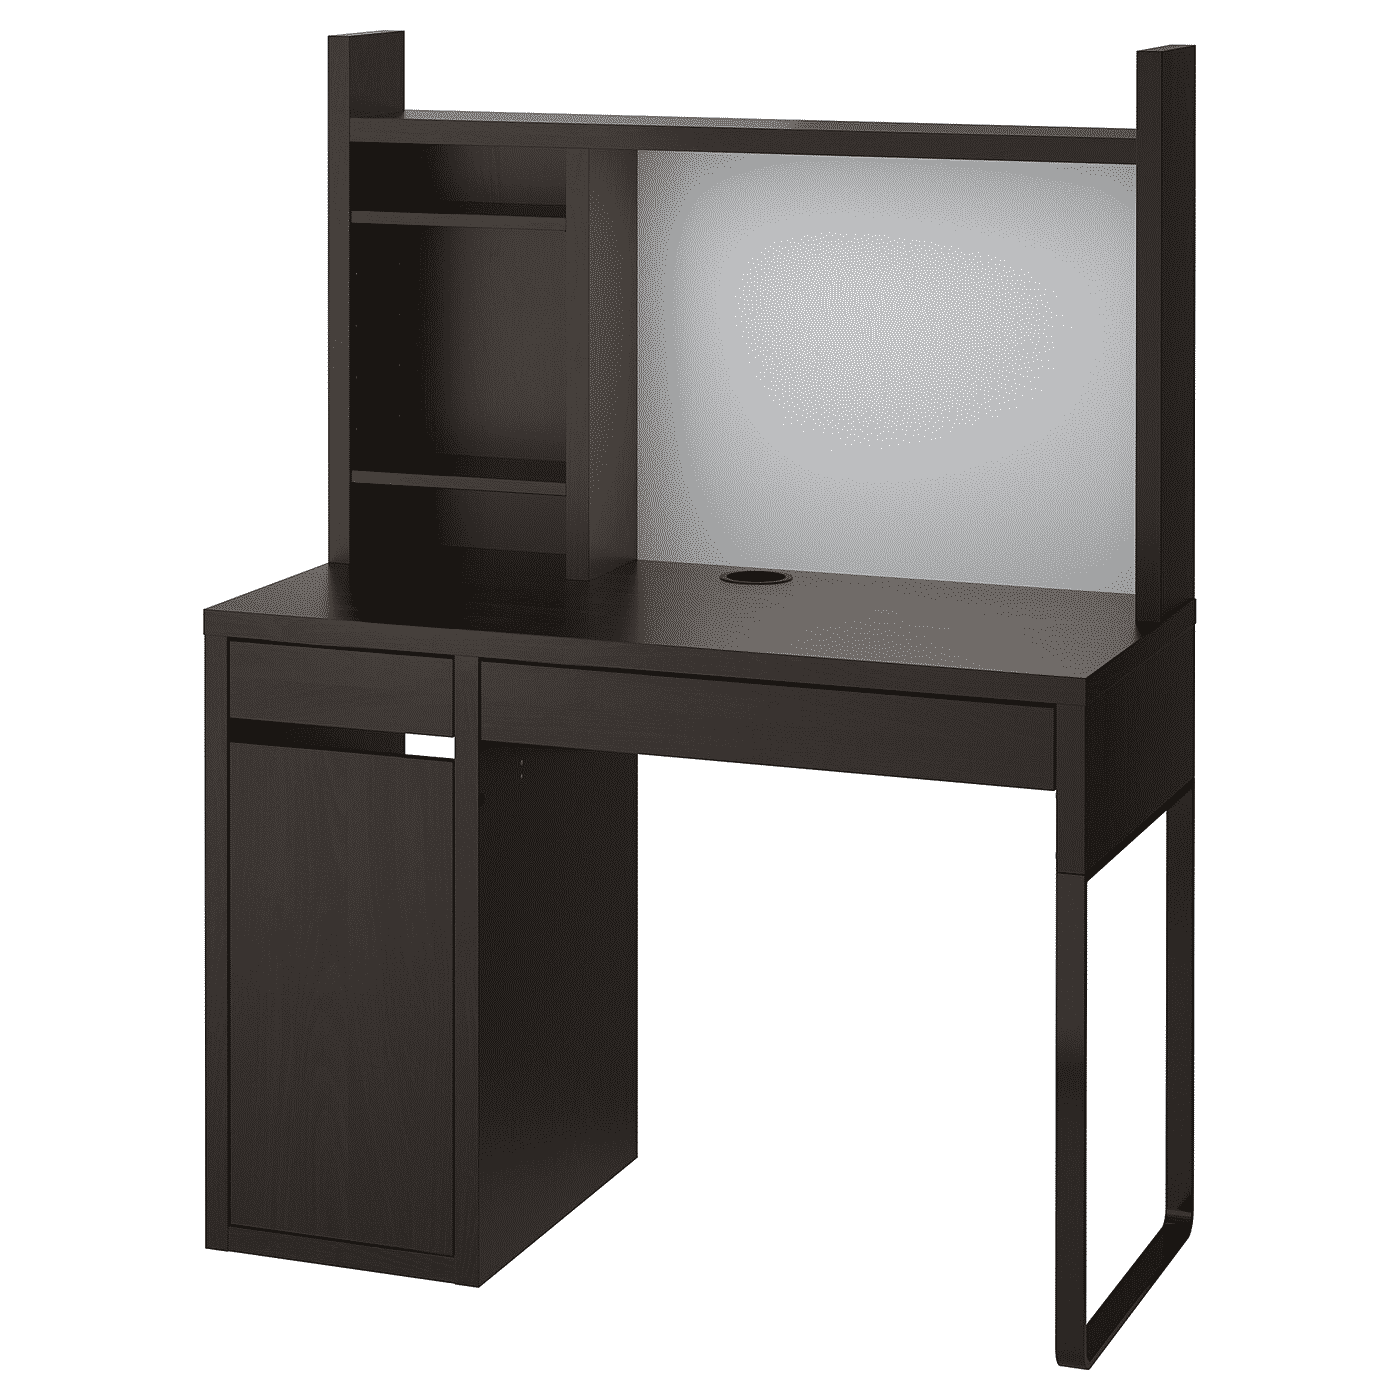 MICKE Desk, black-brown with add on unit